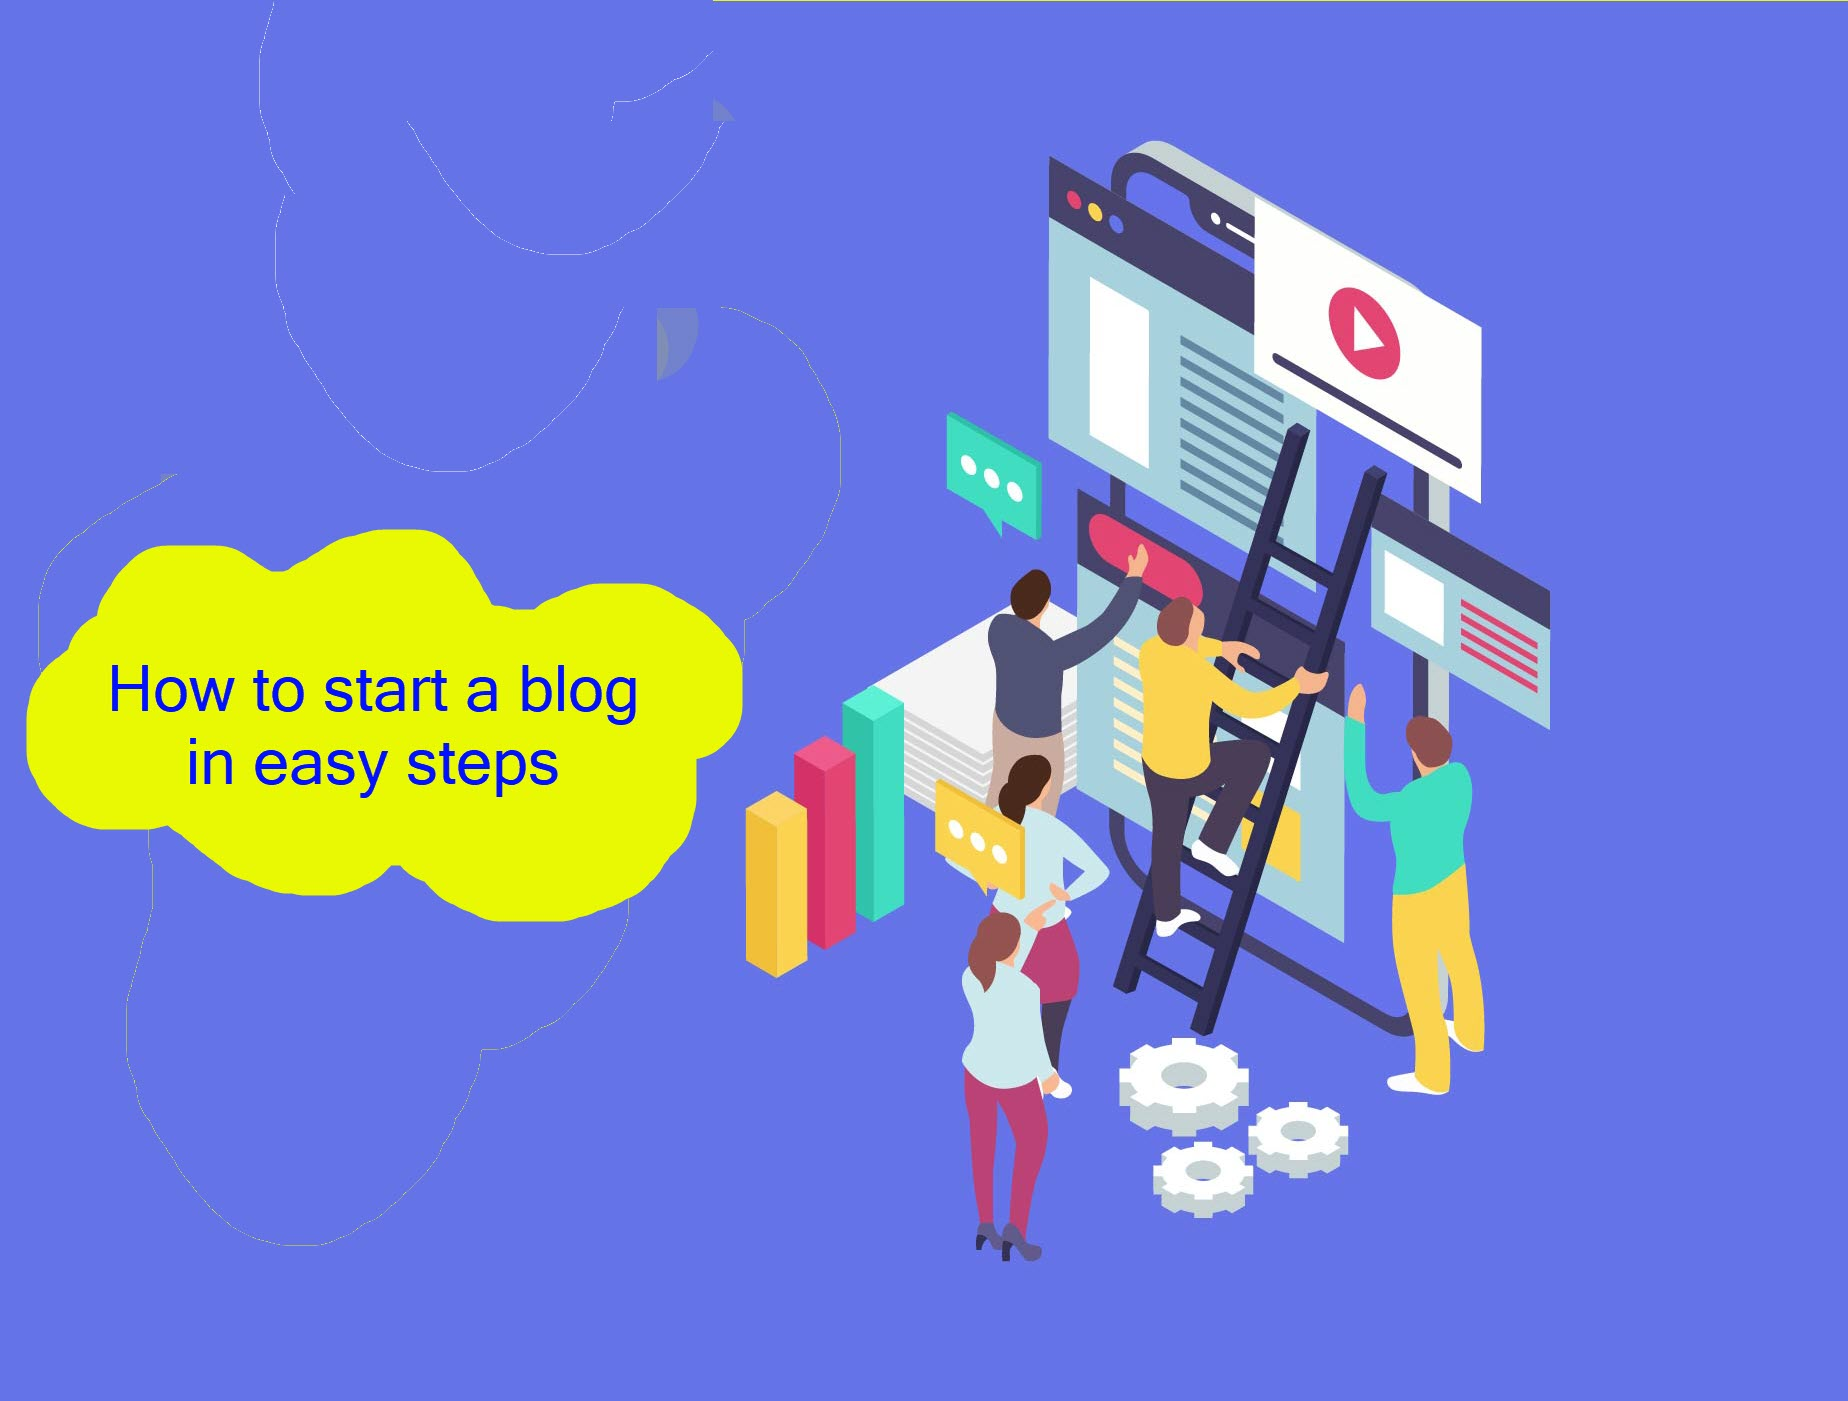 How to start a blog in easy steps